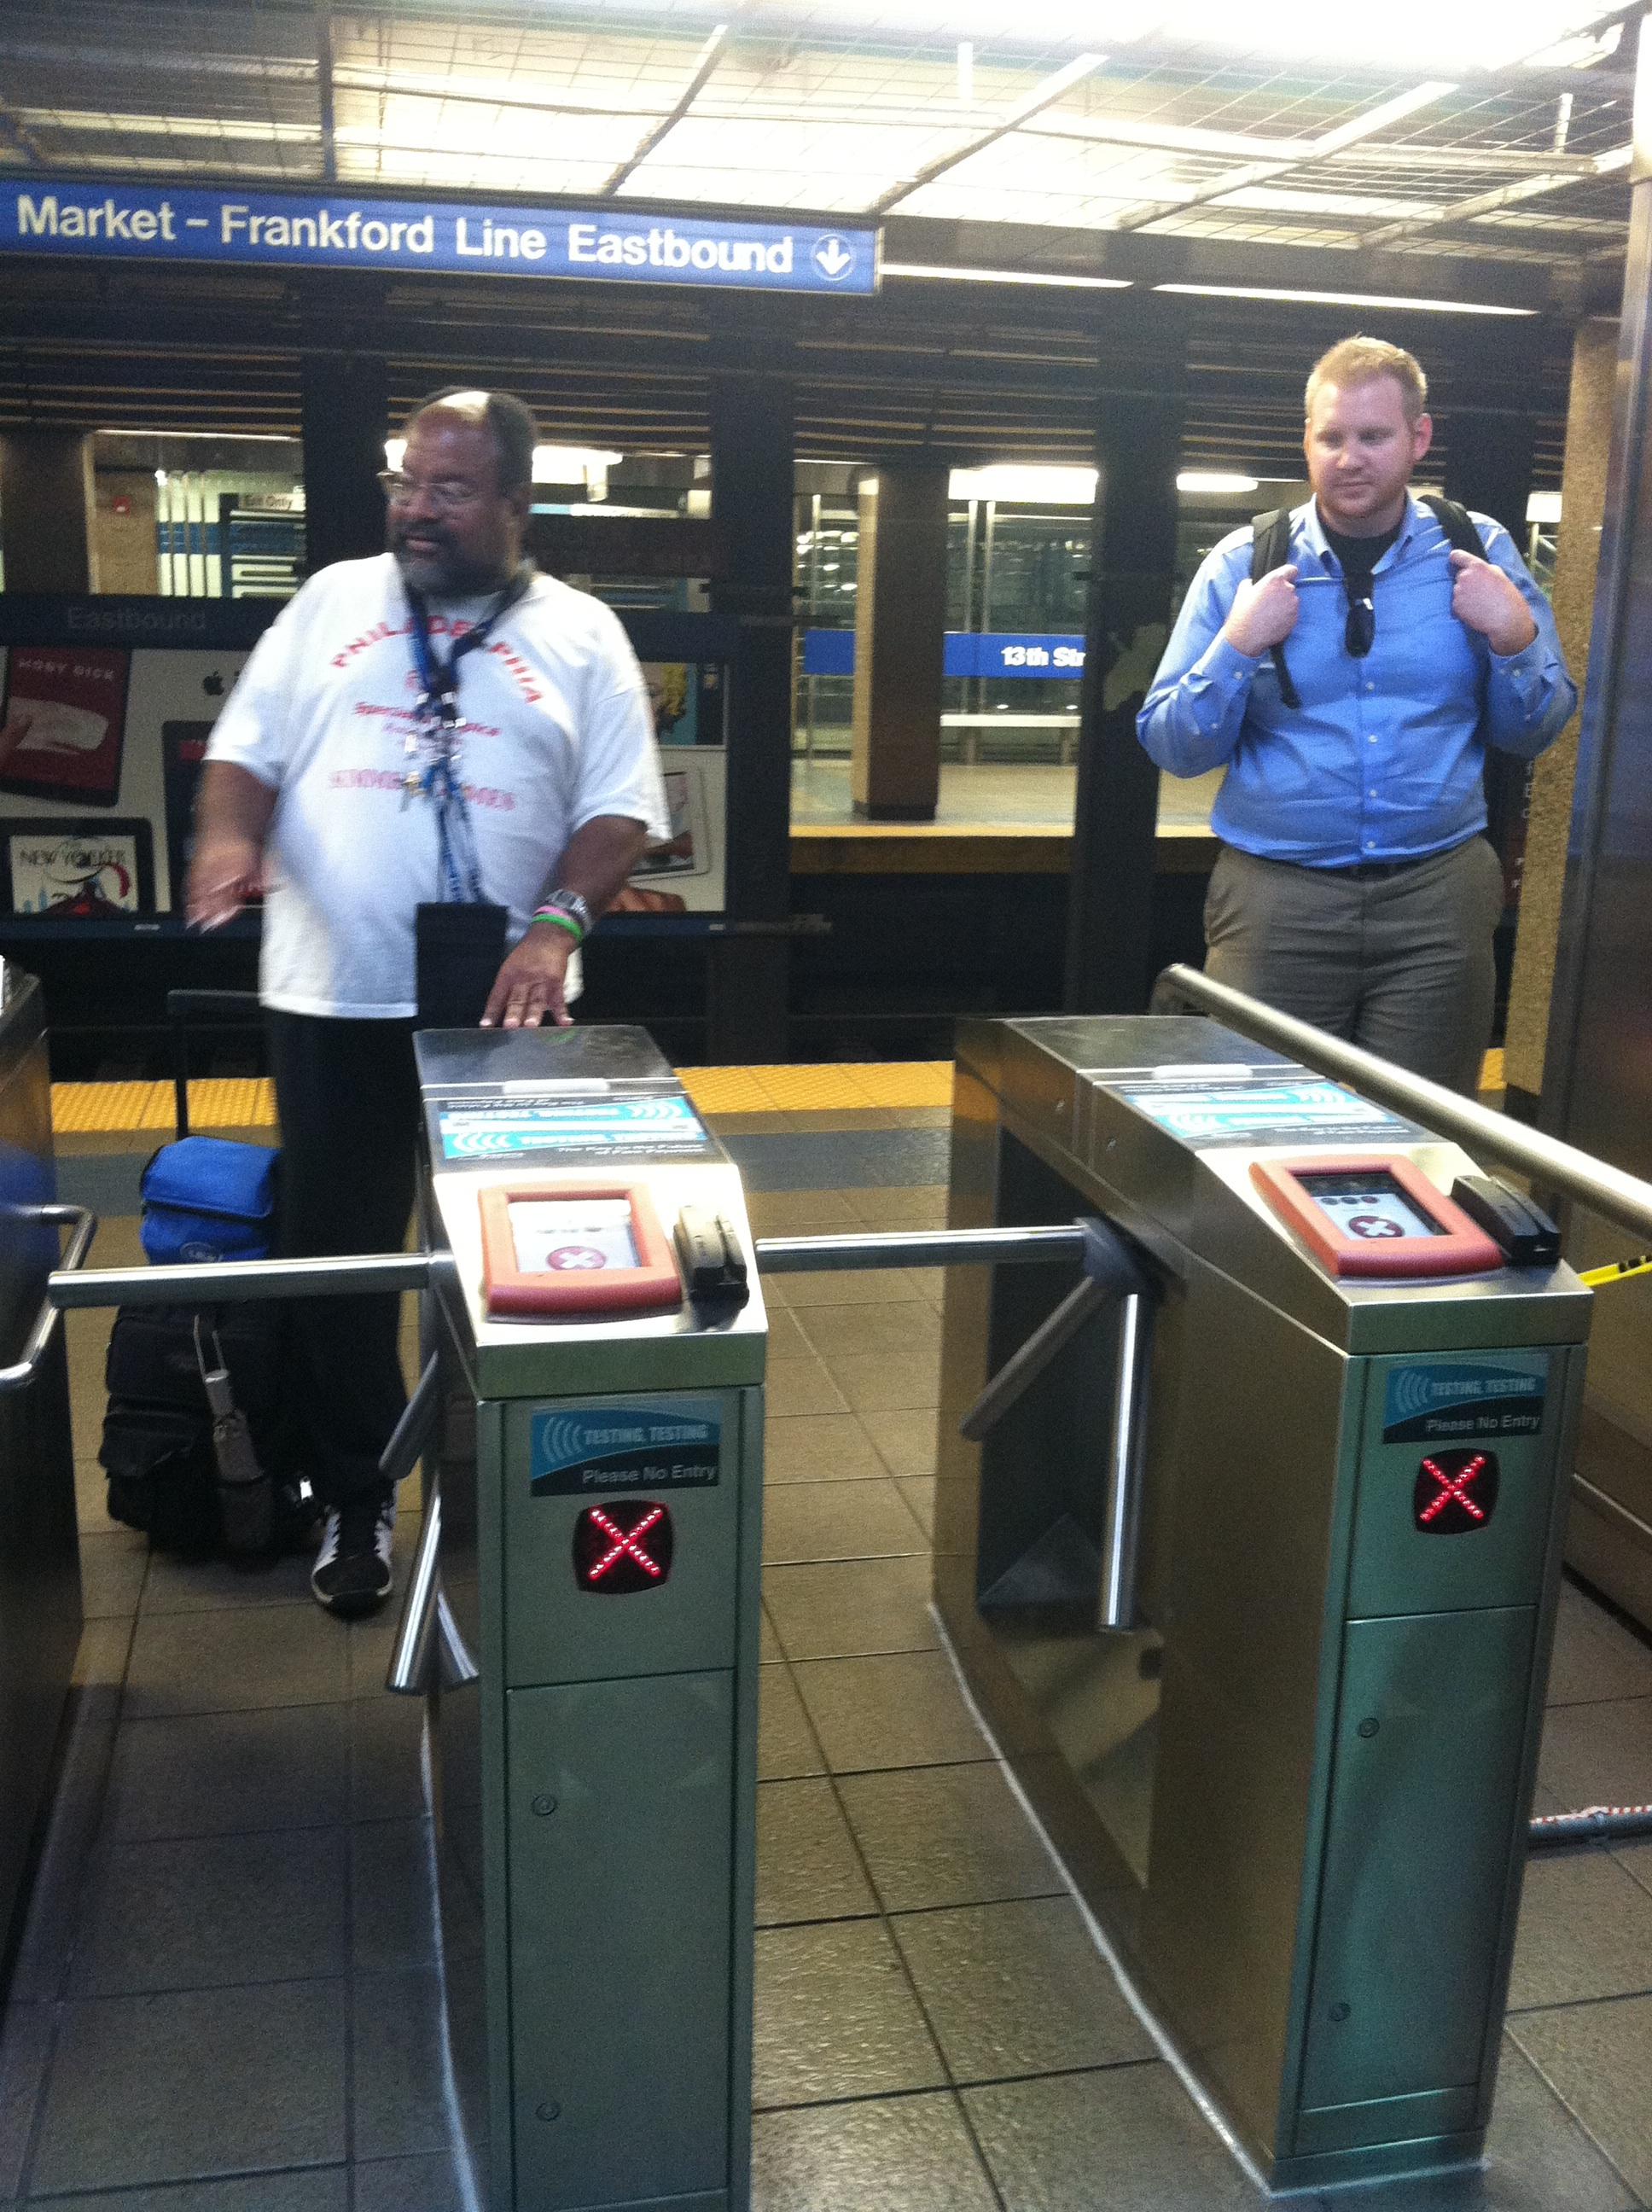 Advanced test pilot turnstiles at 13th Street Station